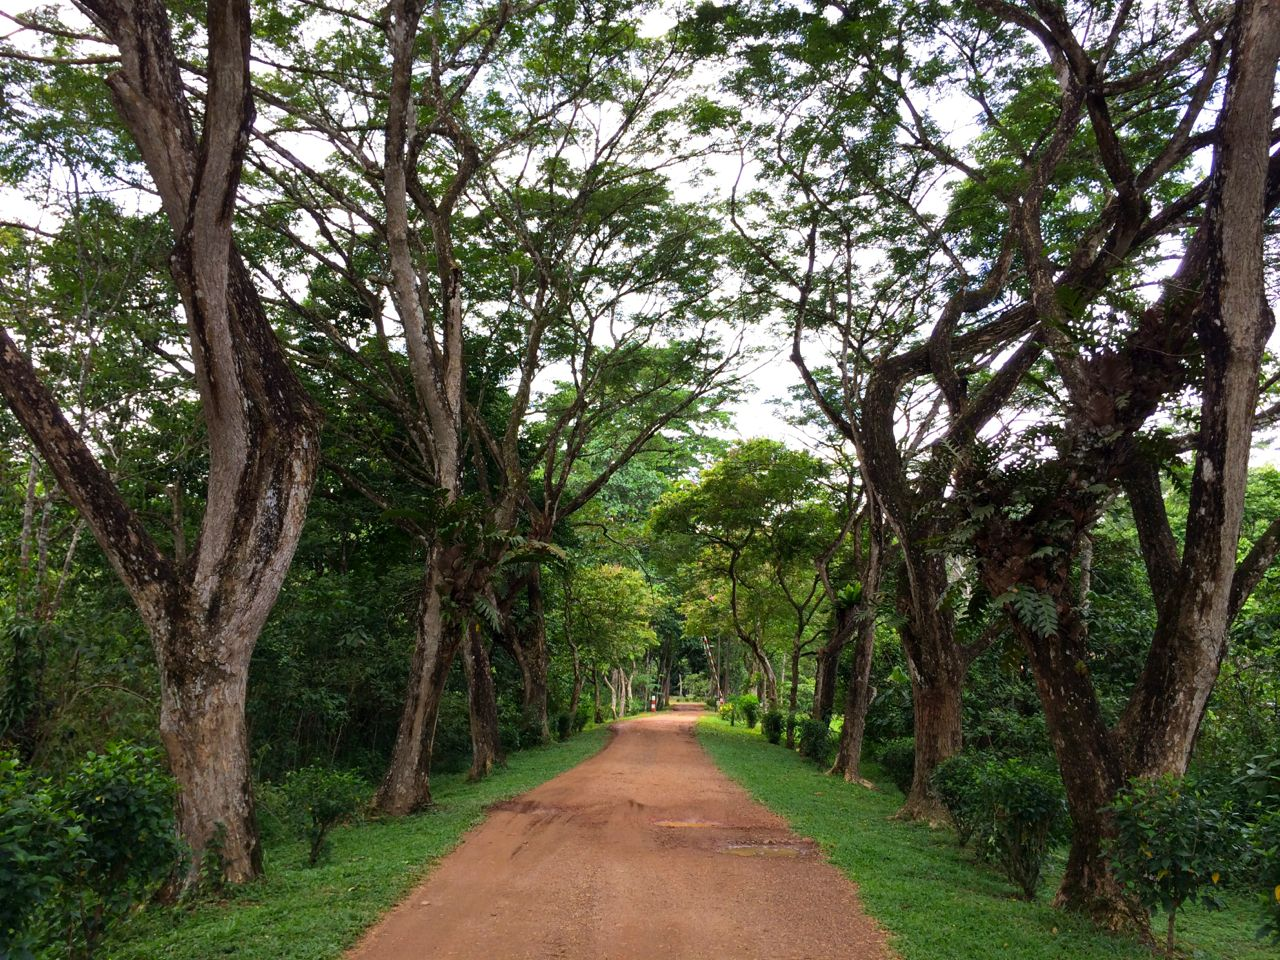 The avenue entrance to Tabin Wildlife Resort, Sabah, Borneo